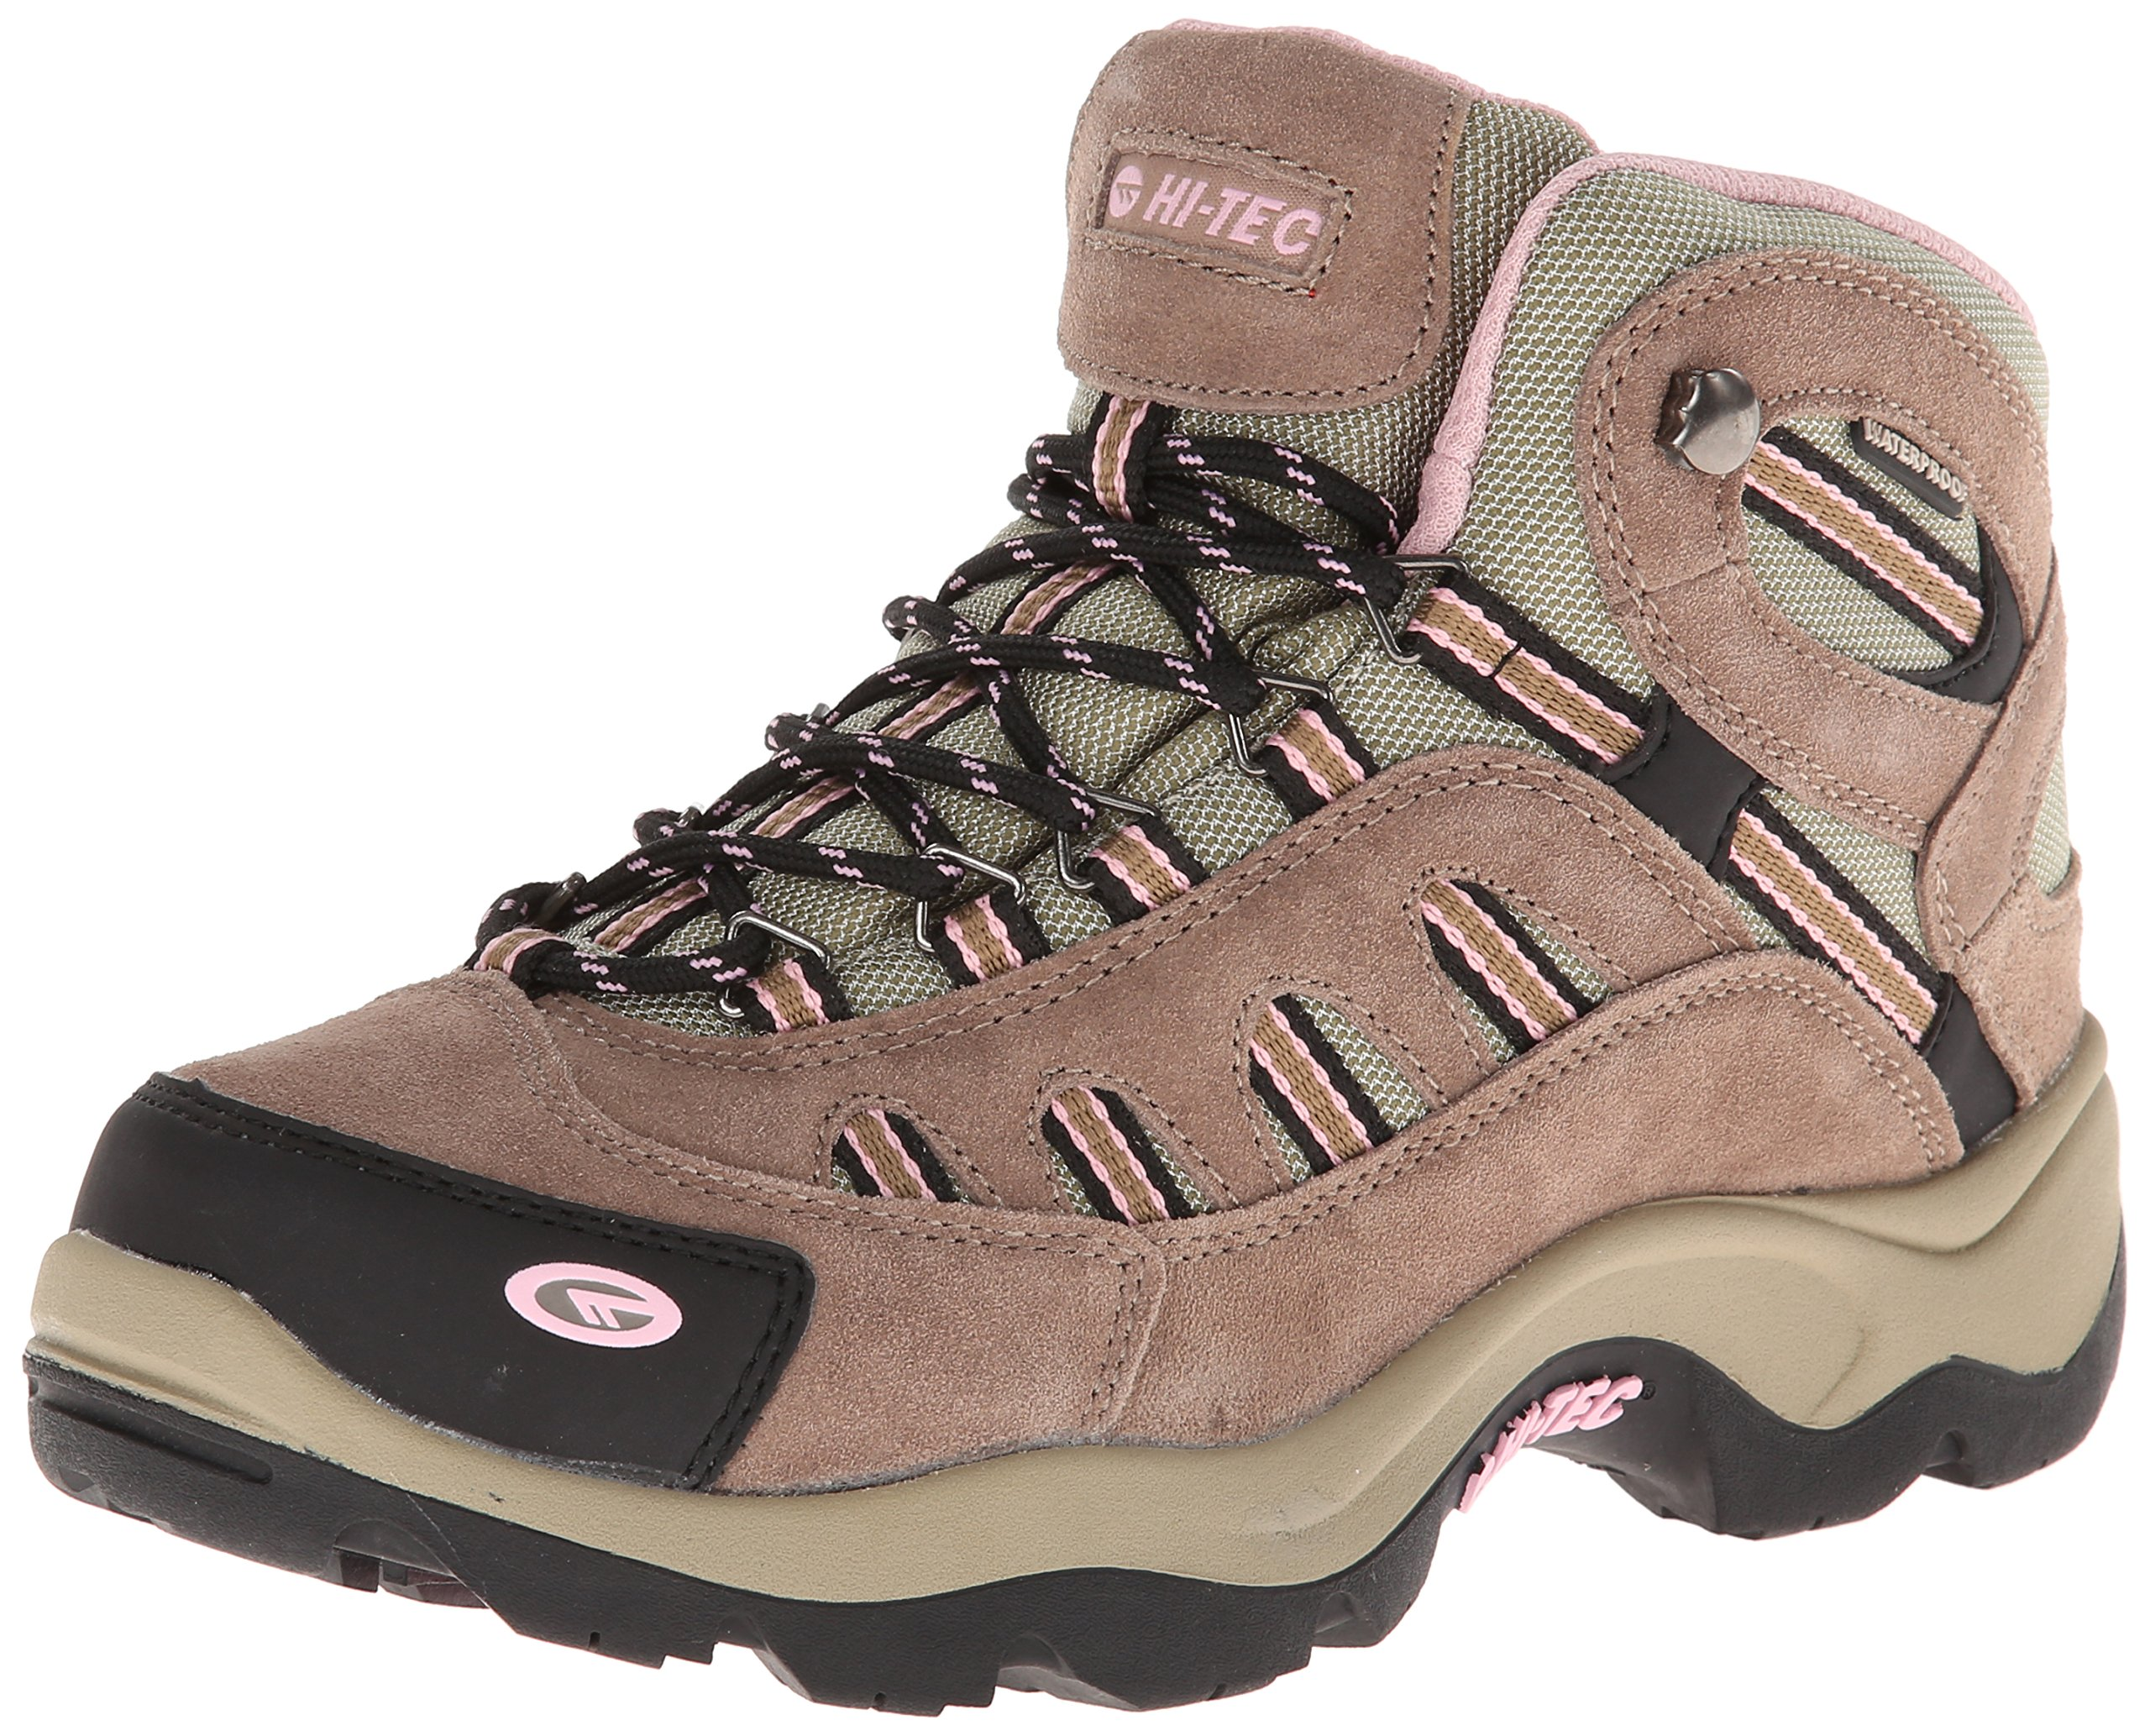 Hi-Tec Women's Bandera Mid Waterproof Hiking Boot,Taupe/Blush,10 M US